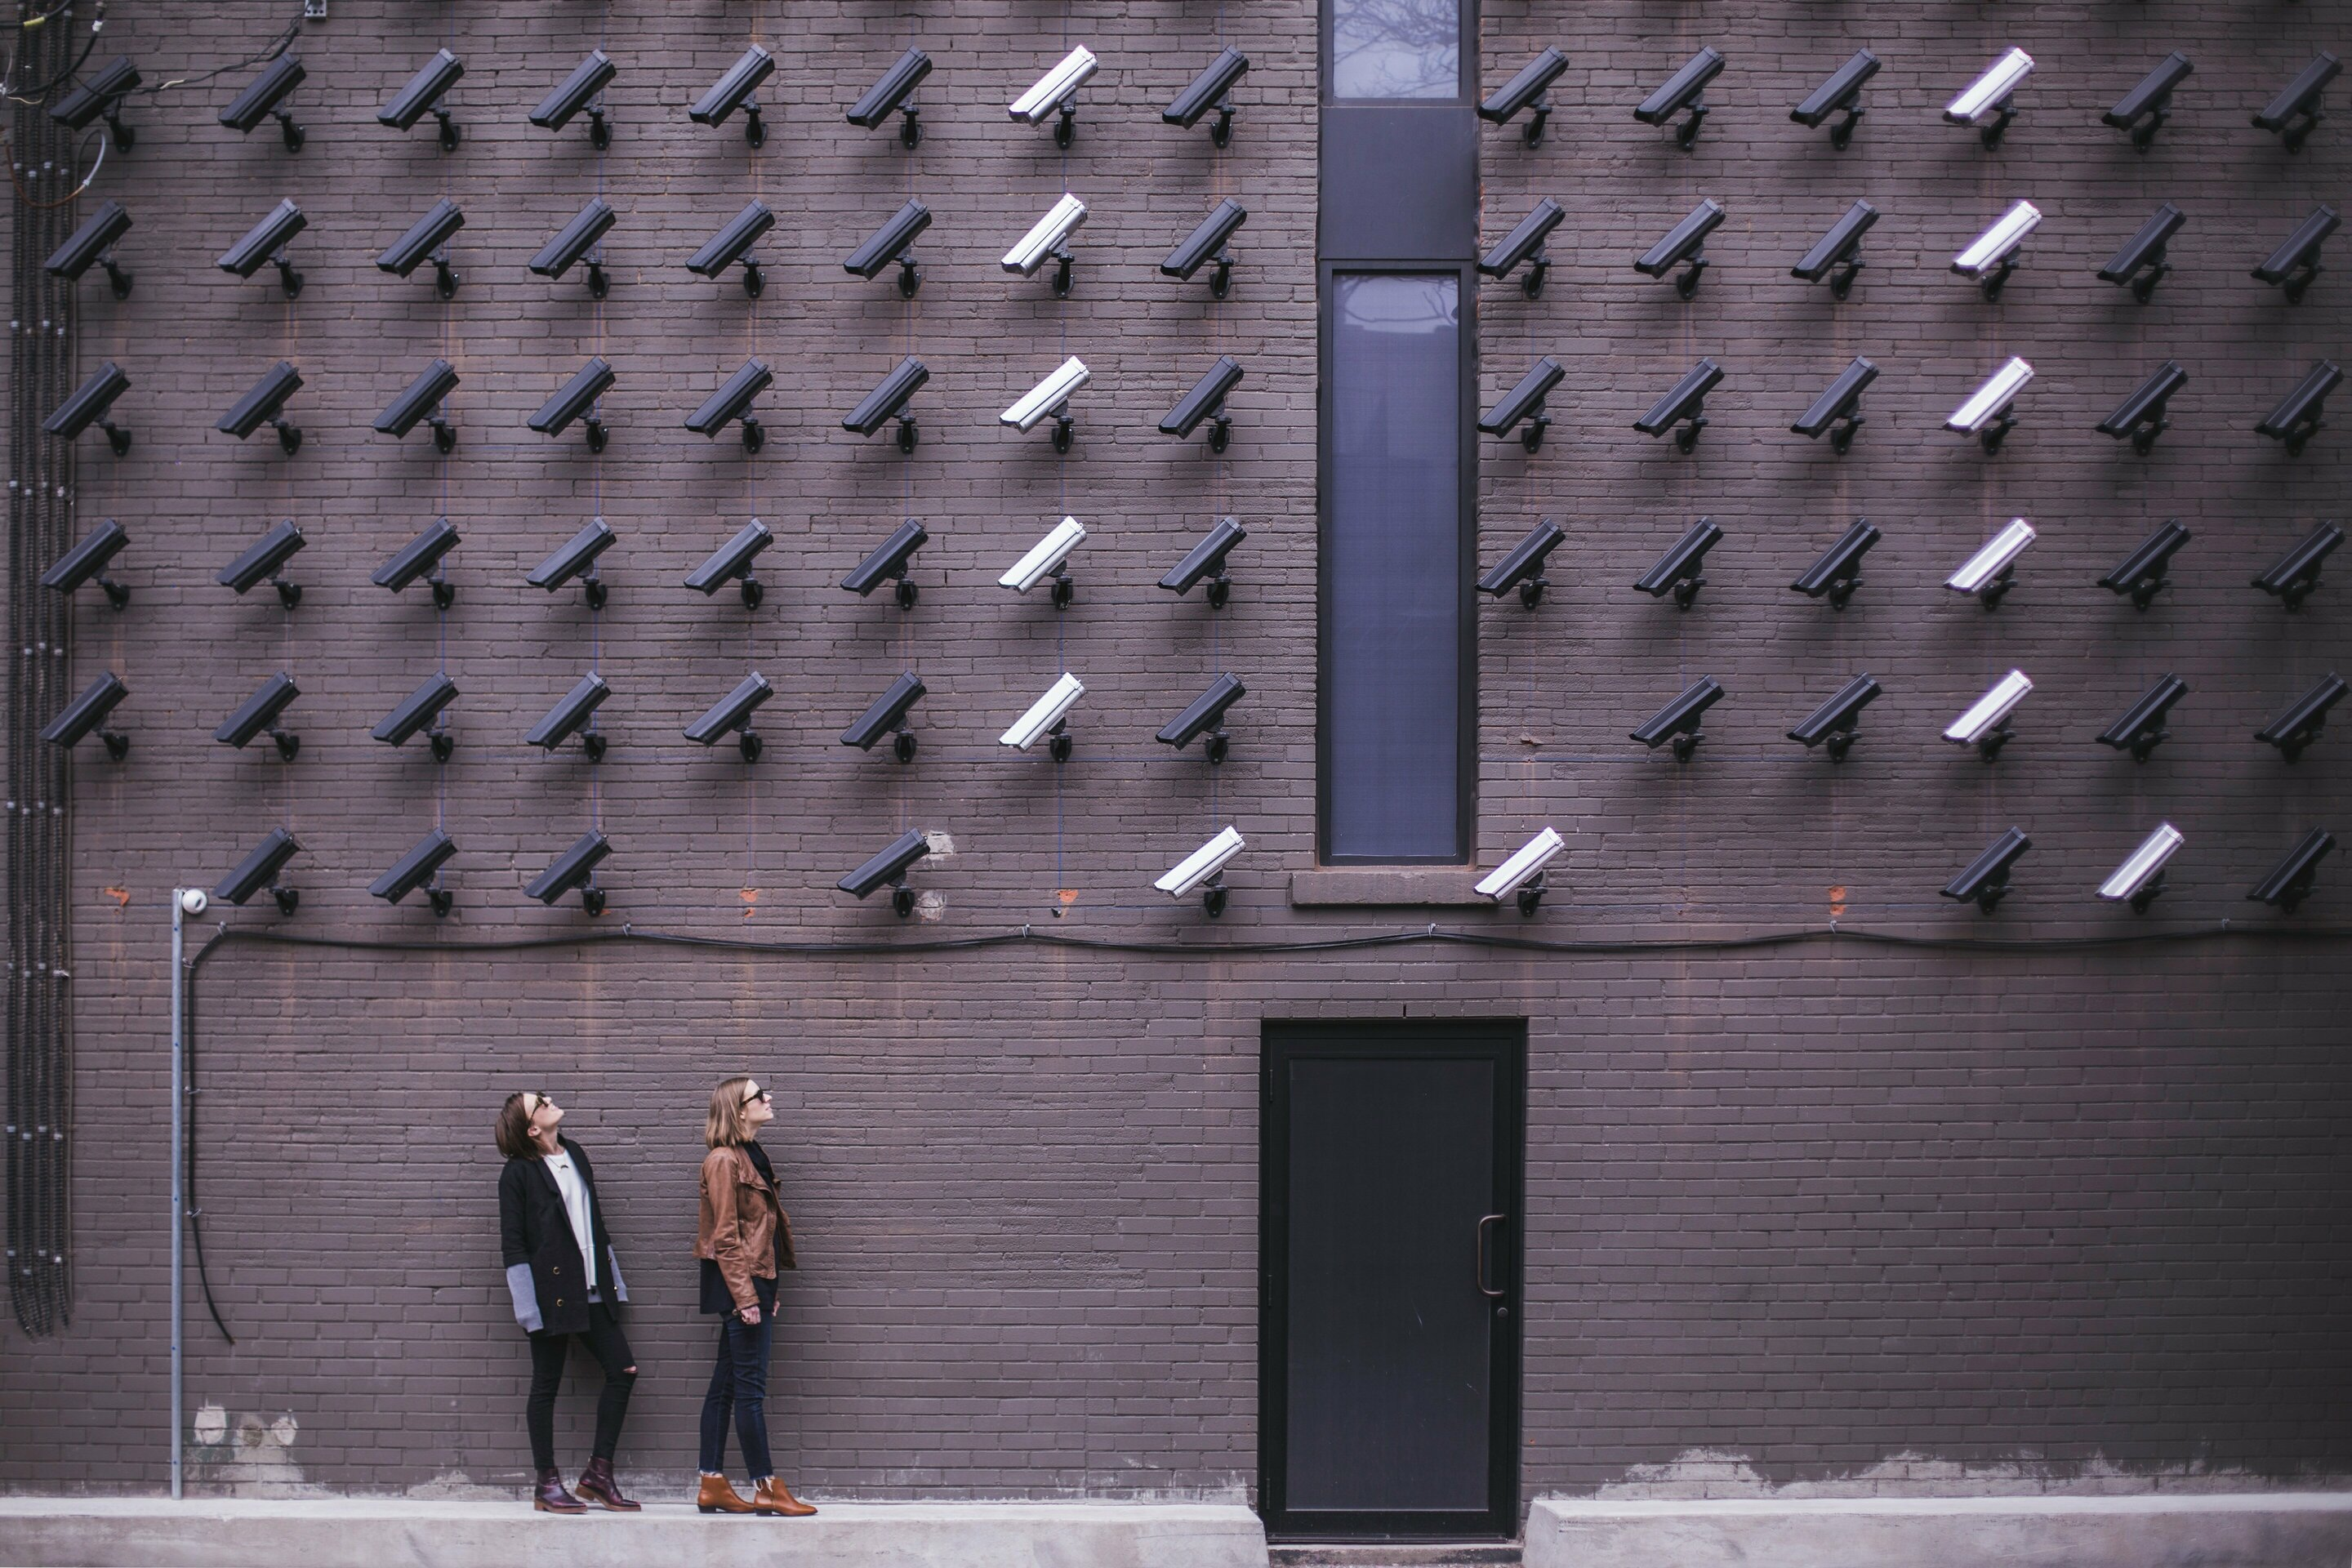 should the government be allowed to spy on its citizens